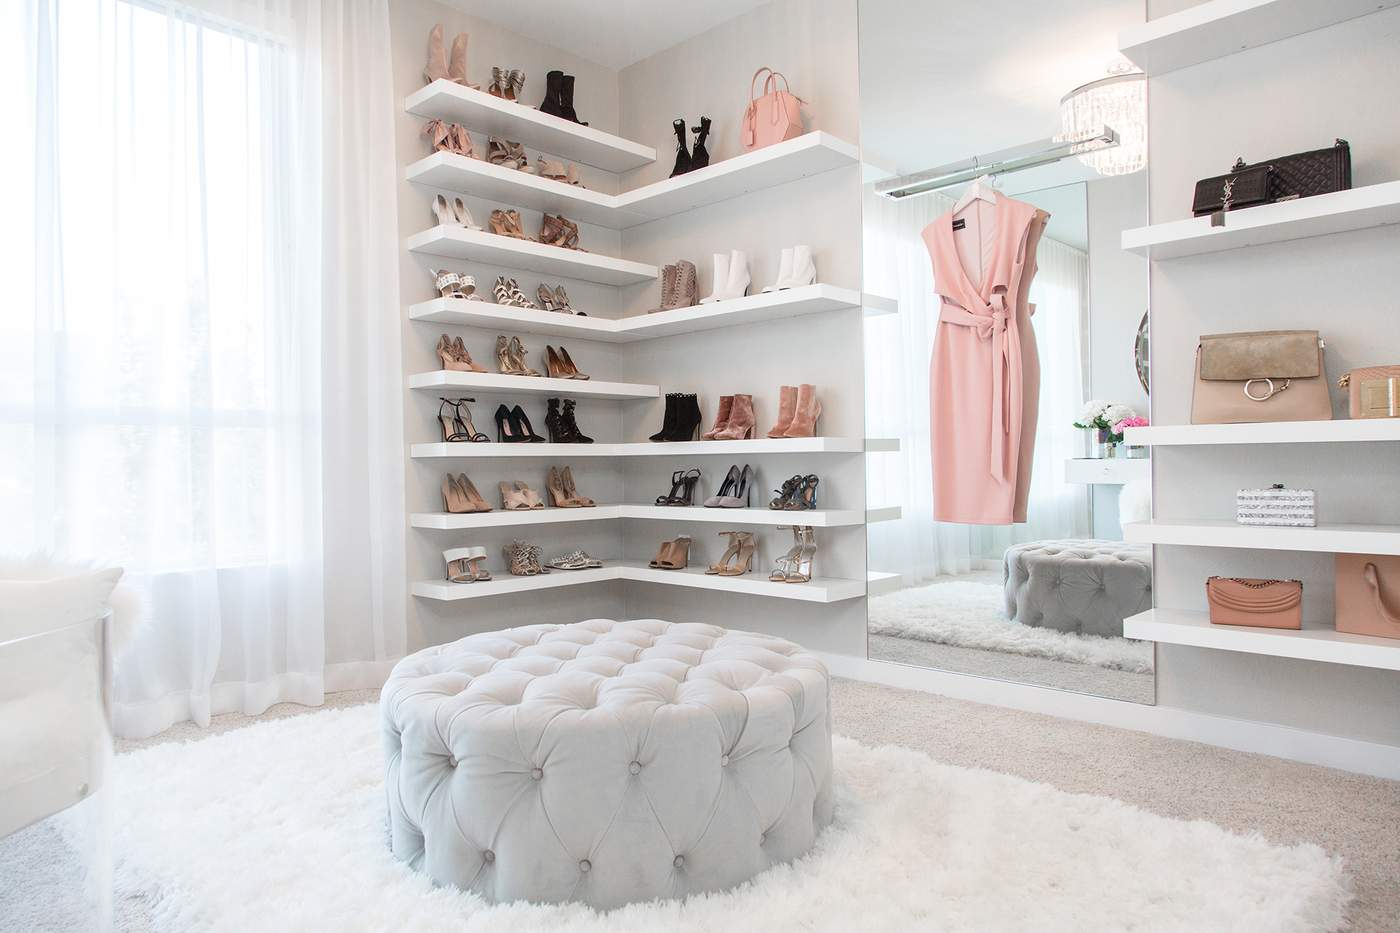 The Top 8 Home Design Trends in 2018   Mansion Global This walk in closet designed by Lisa Adams of LA Closet Design features a  chic staging area that s social media ready  Photography Courtesy of LA  Closet